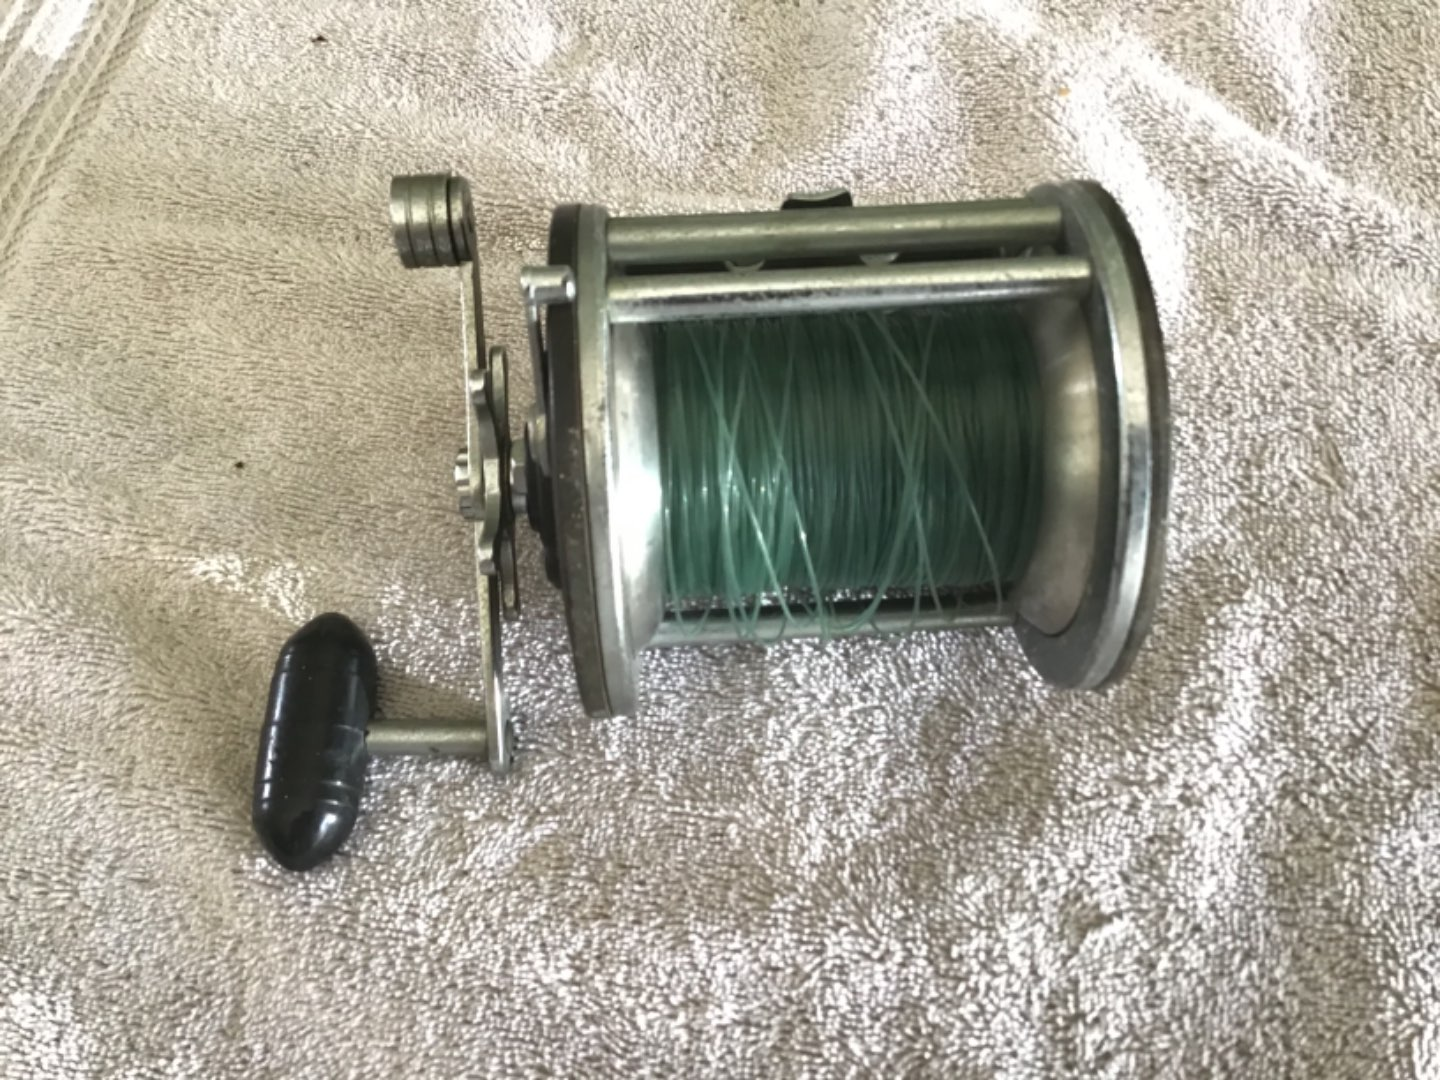 Lot # 254 Awesome PENN LONG-BEACH 68 Reel! With Line - Clean, Works Smoothly!